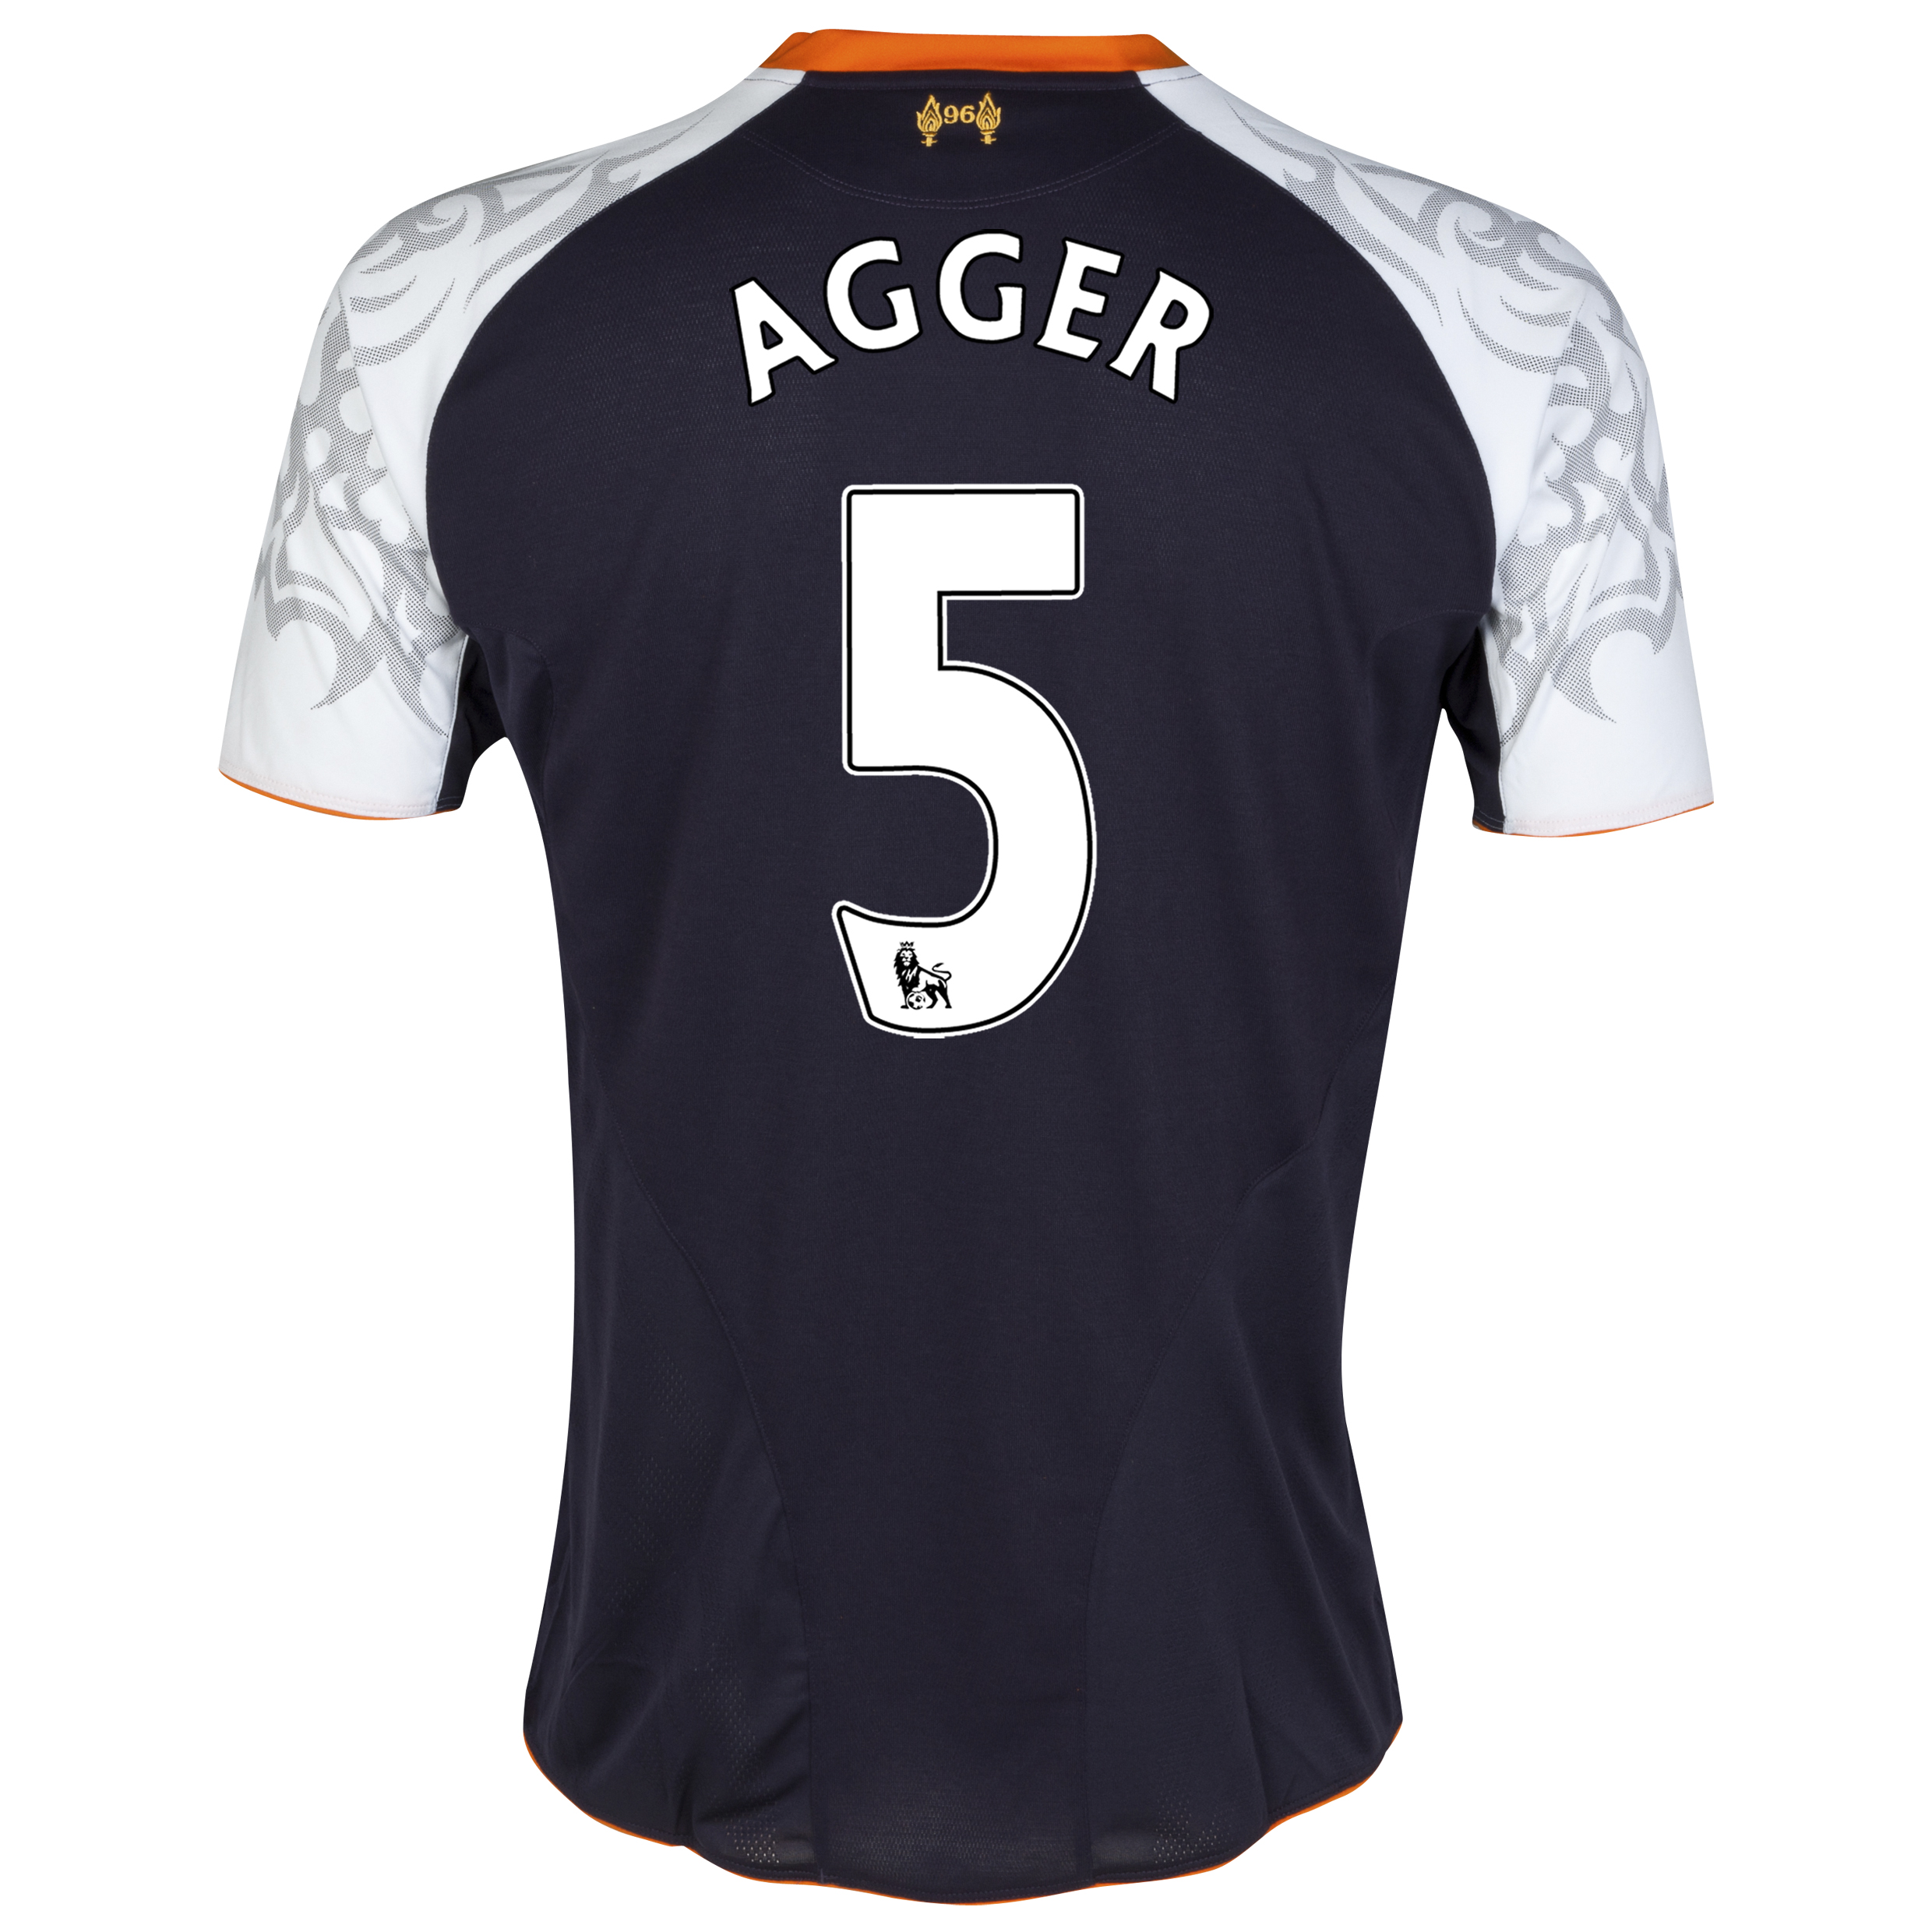 Liverpool Third Shirt 2012/13 - Youths with Agger 5 printing